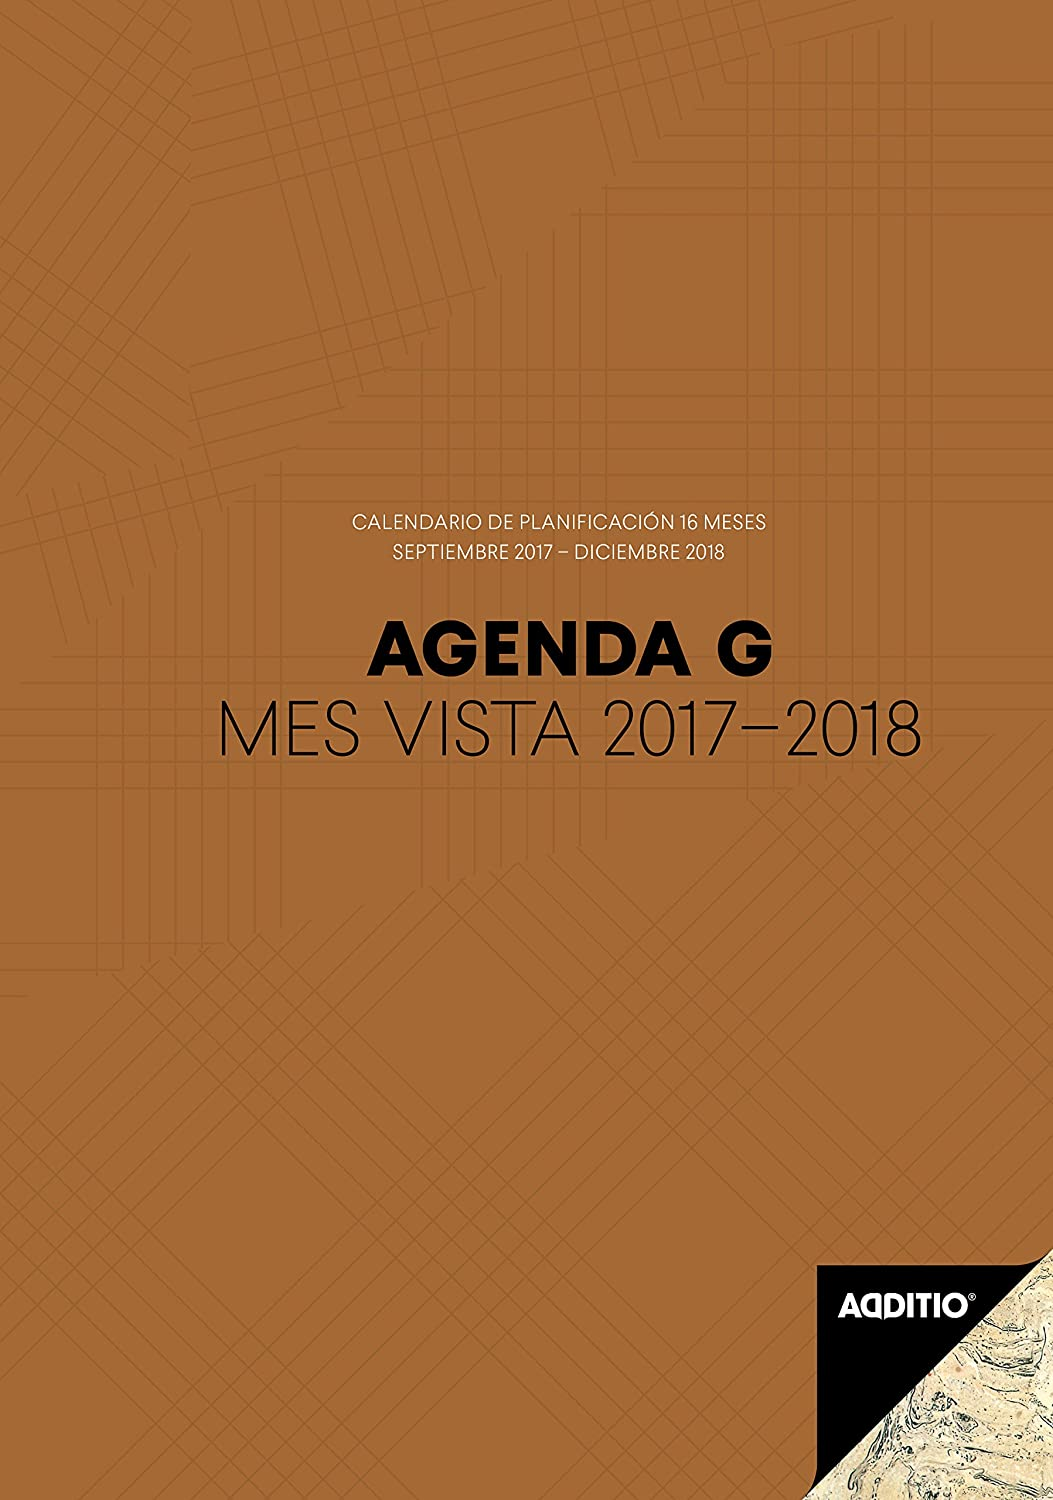 Additio G 2017-2018 - Agenda mes vista para el profesorado, color marrón